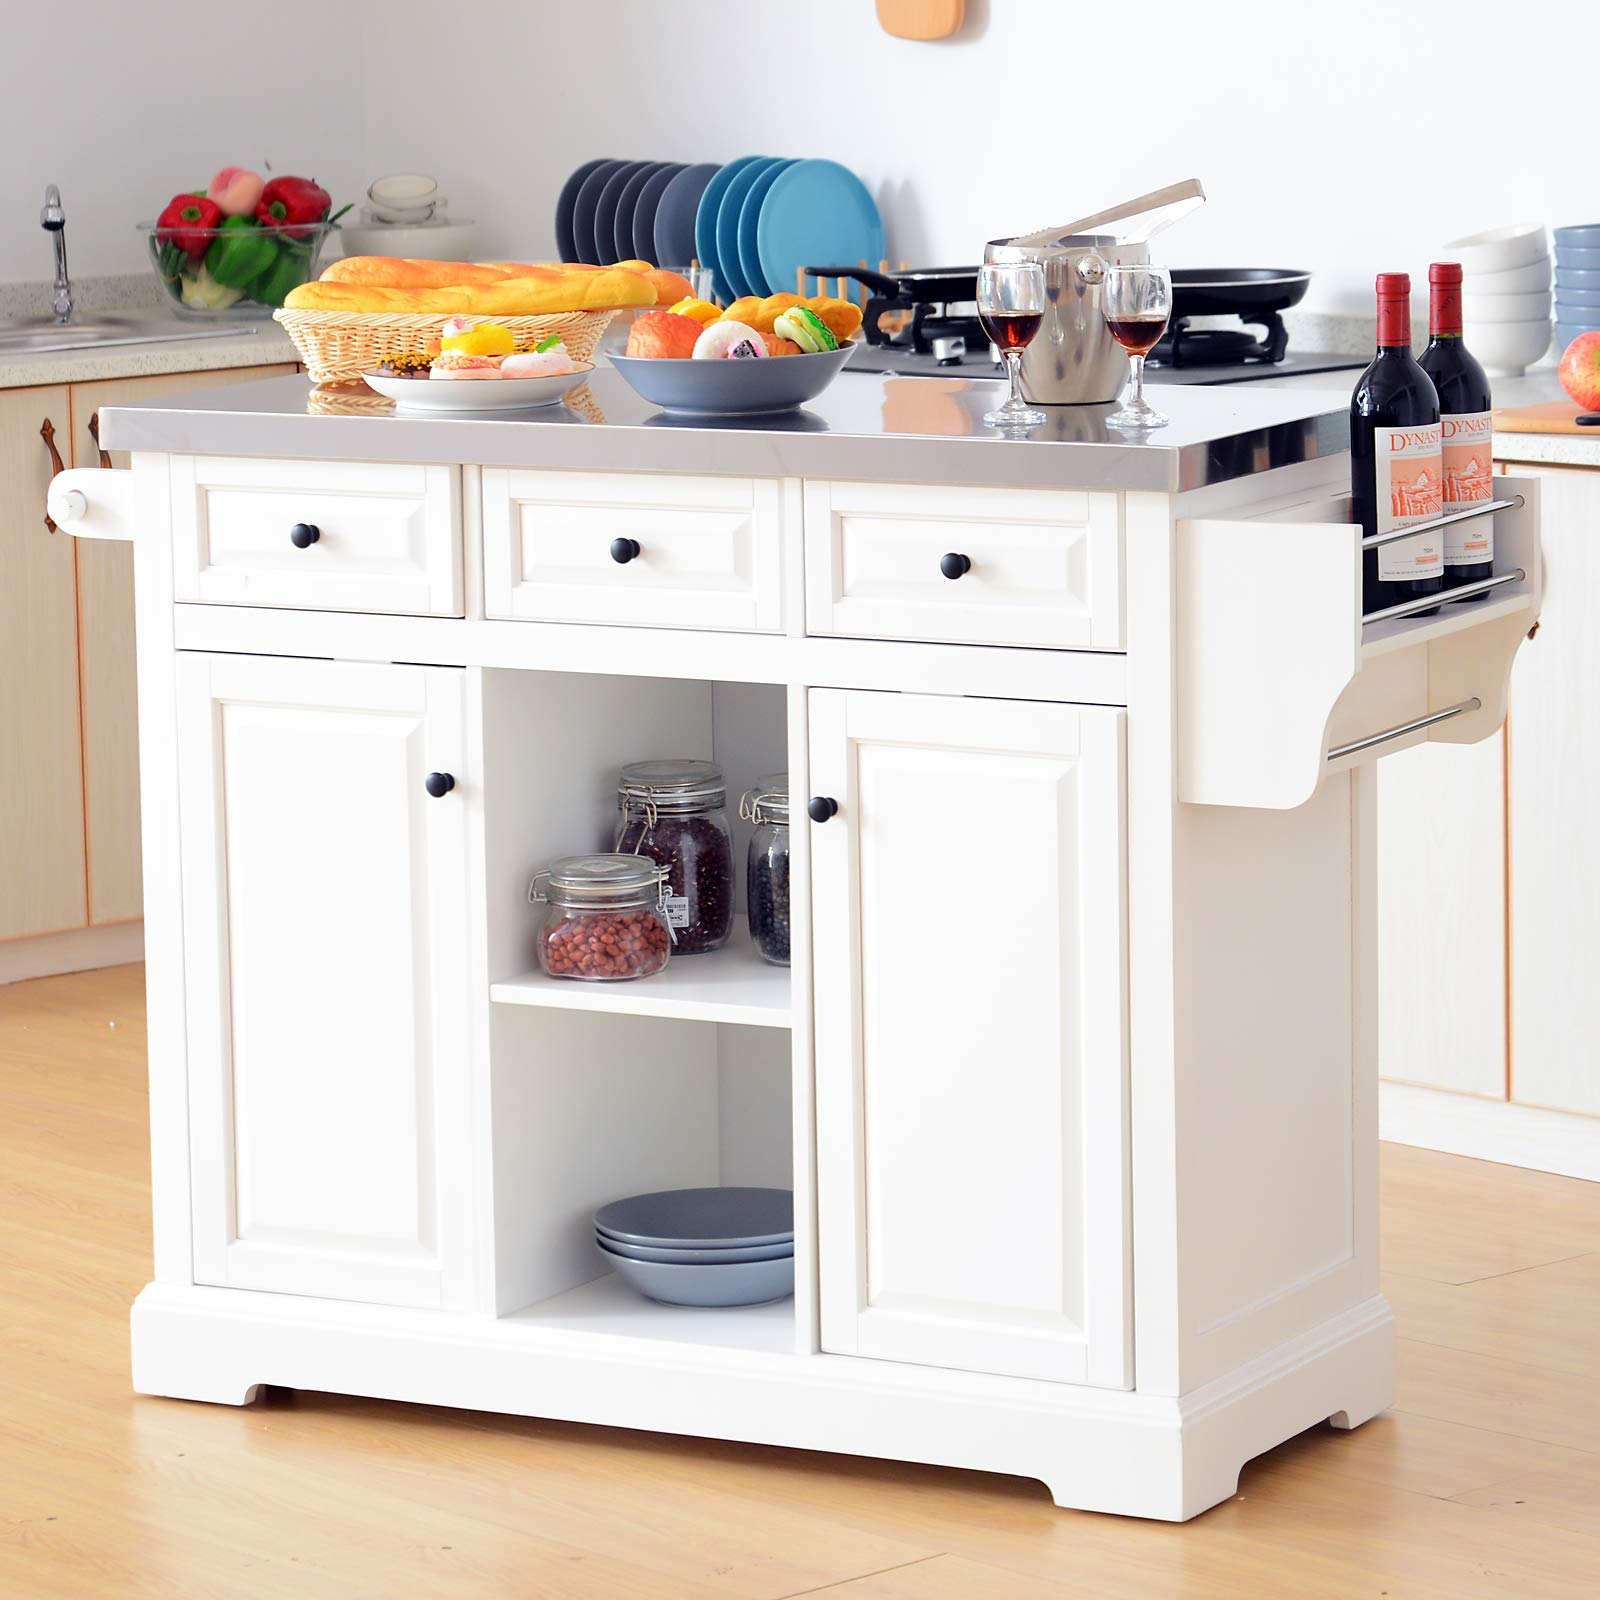 HOMCOM 51'' x 18'' x 36'' Pine Wood Stainless Steel Portable Multi-Storage Rolling Kitchen Island Cart with Wheels - White by HOMCOM (Image #2)